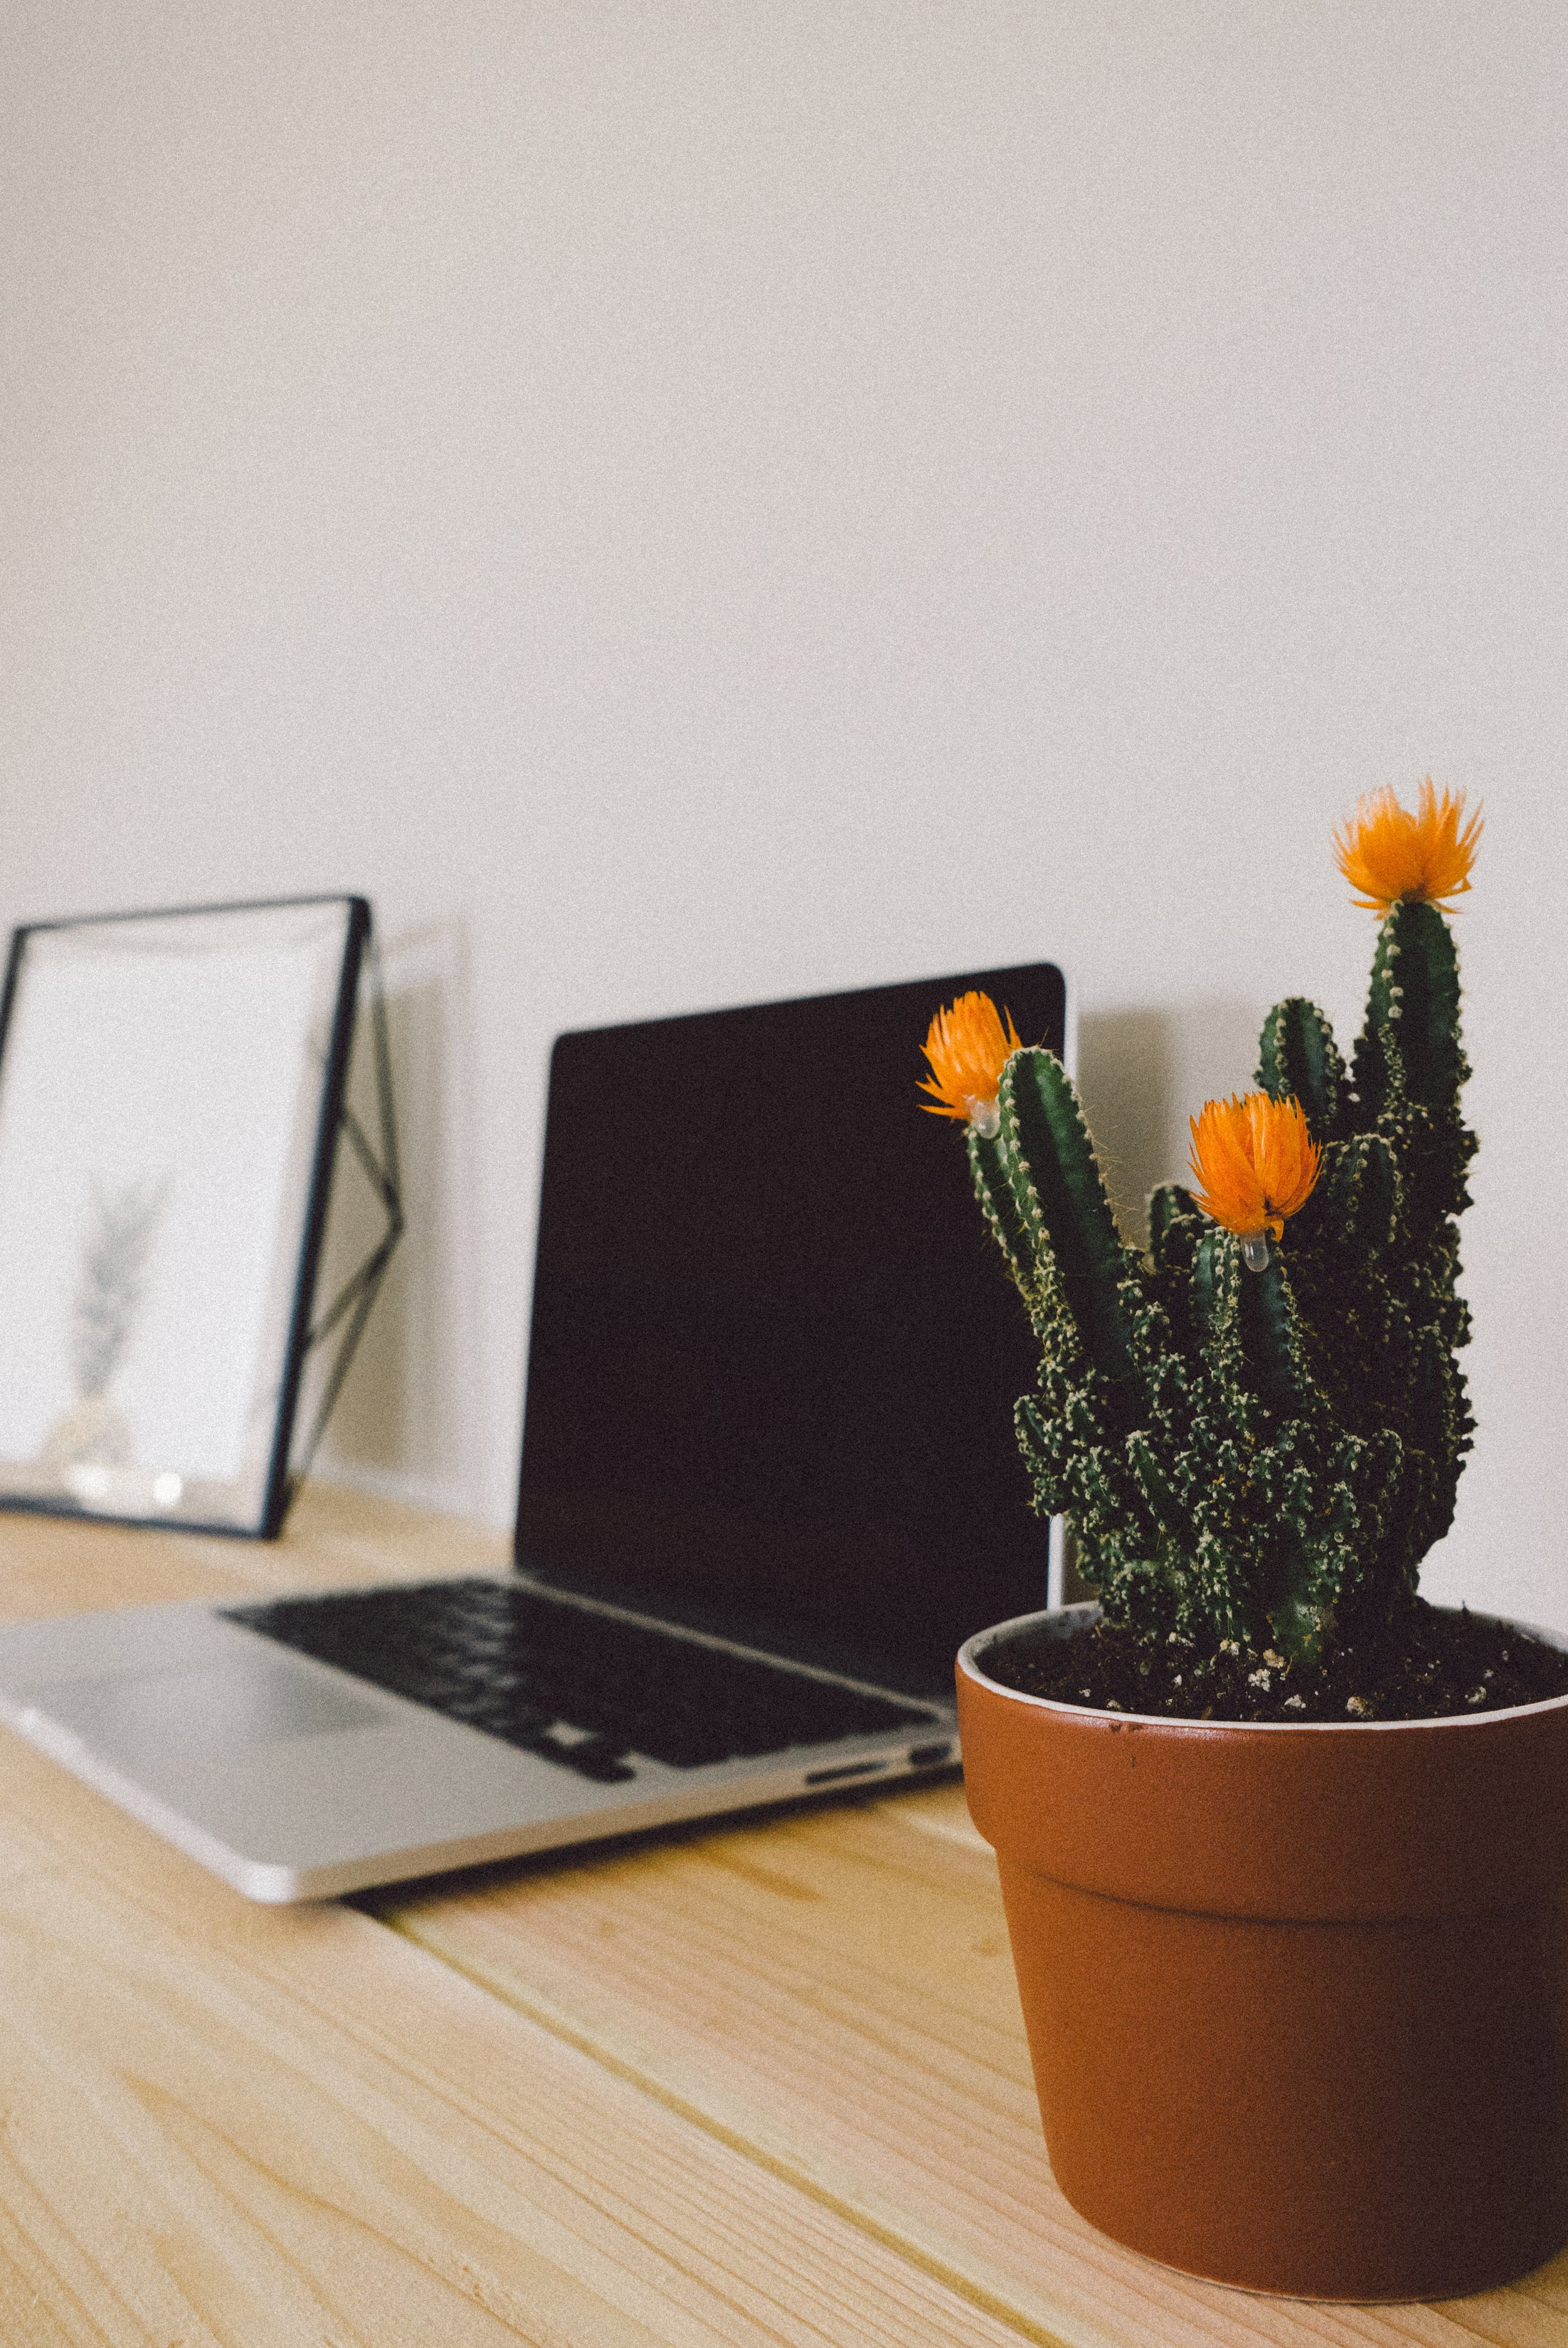 The Freelance Life can feel as prickly as… well, this cactus! But it doesn't have to be.